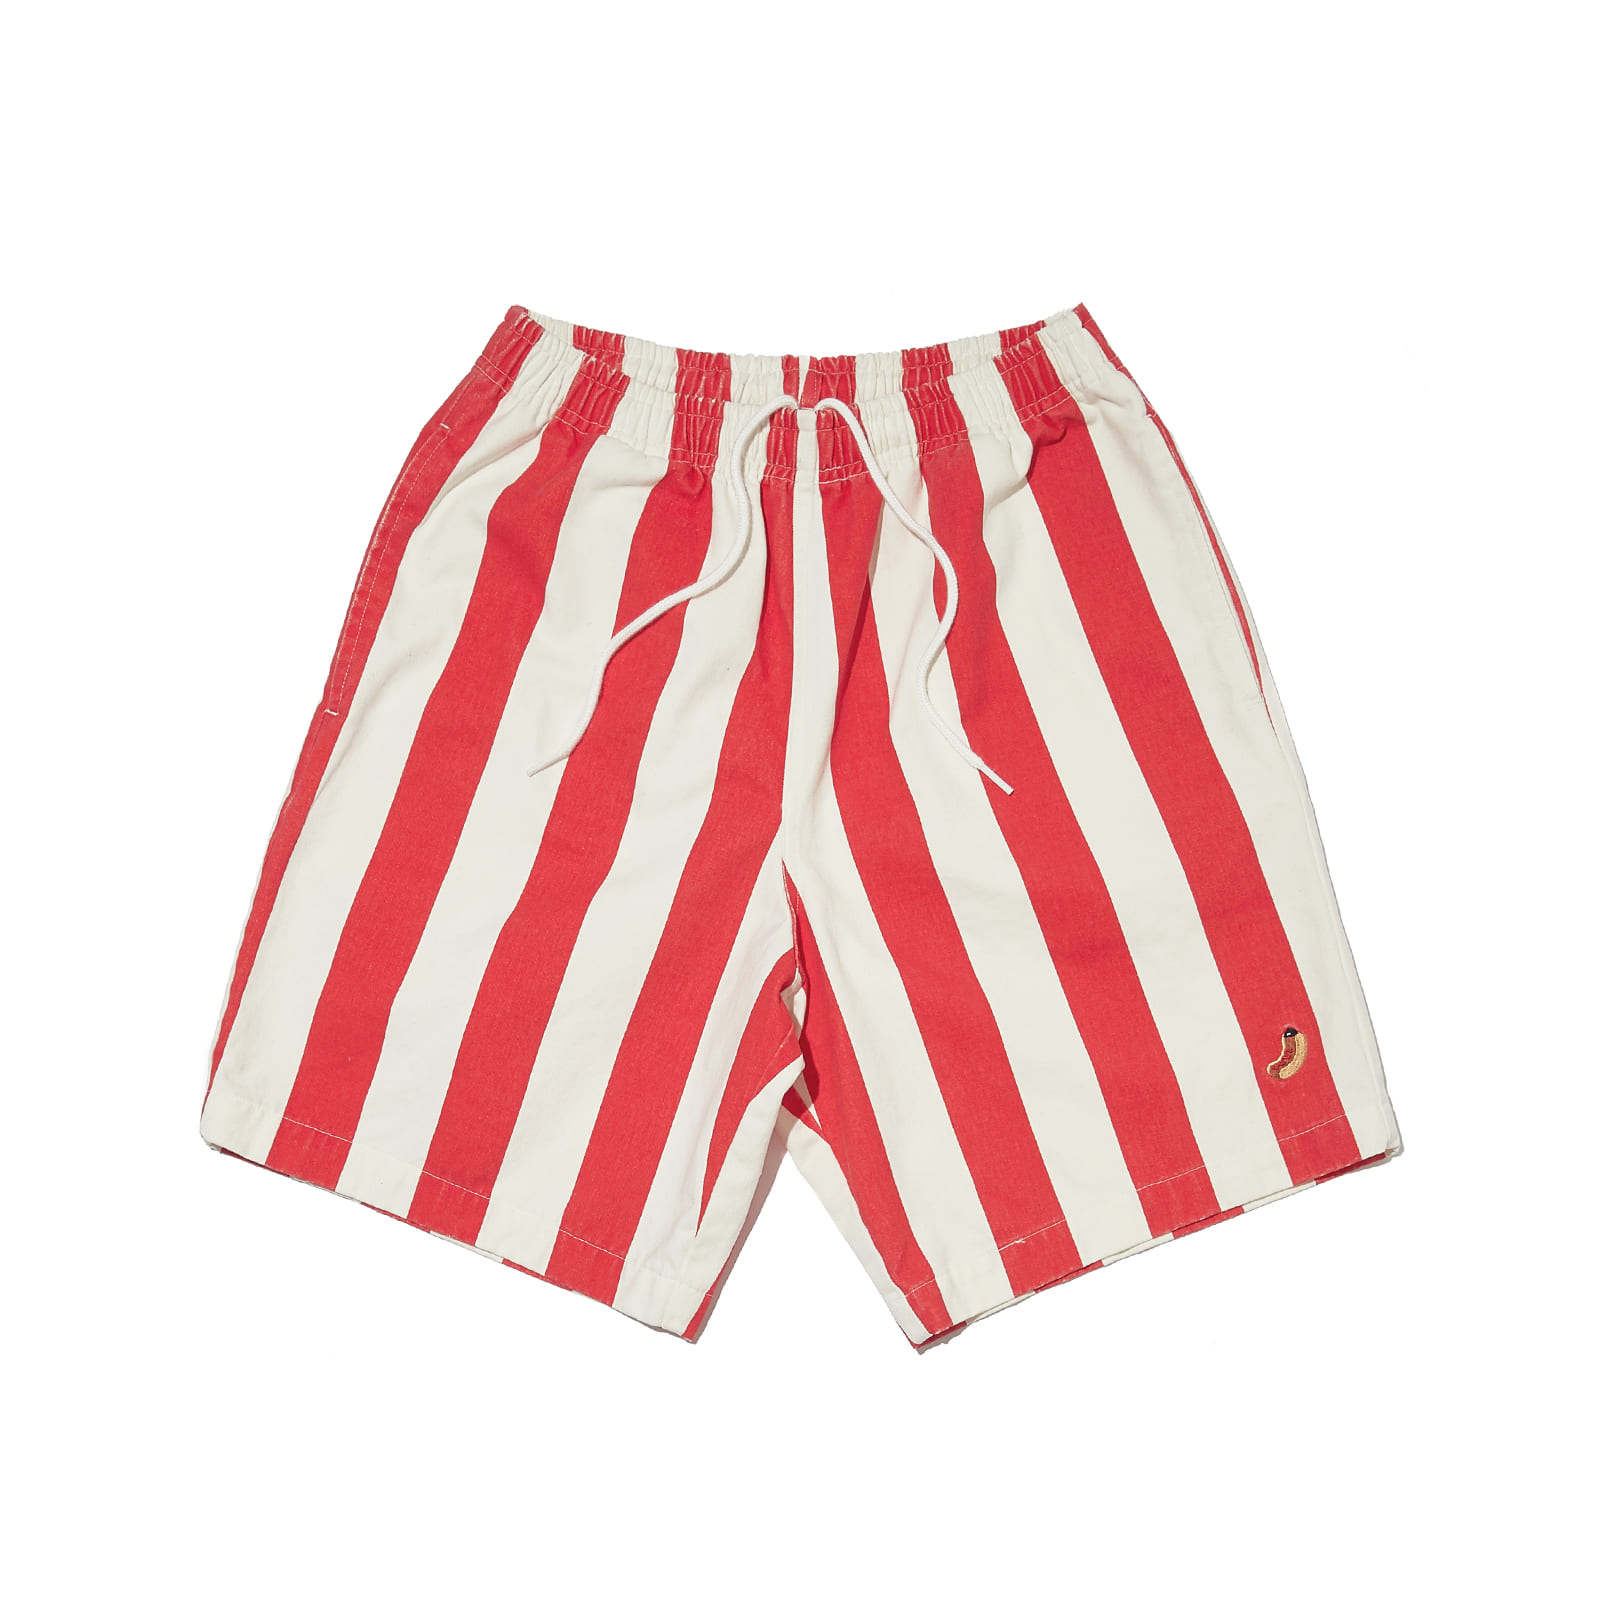 HOTDOG SHORTS (RED)